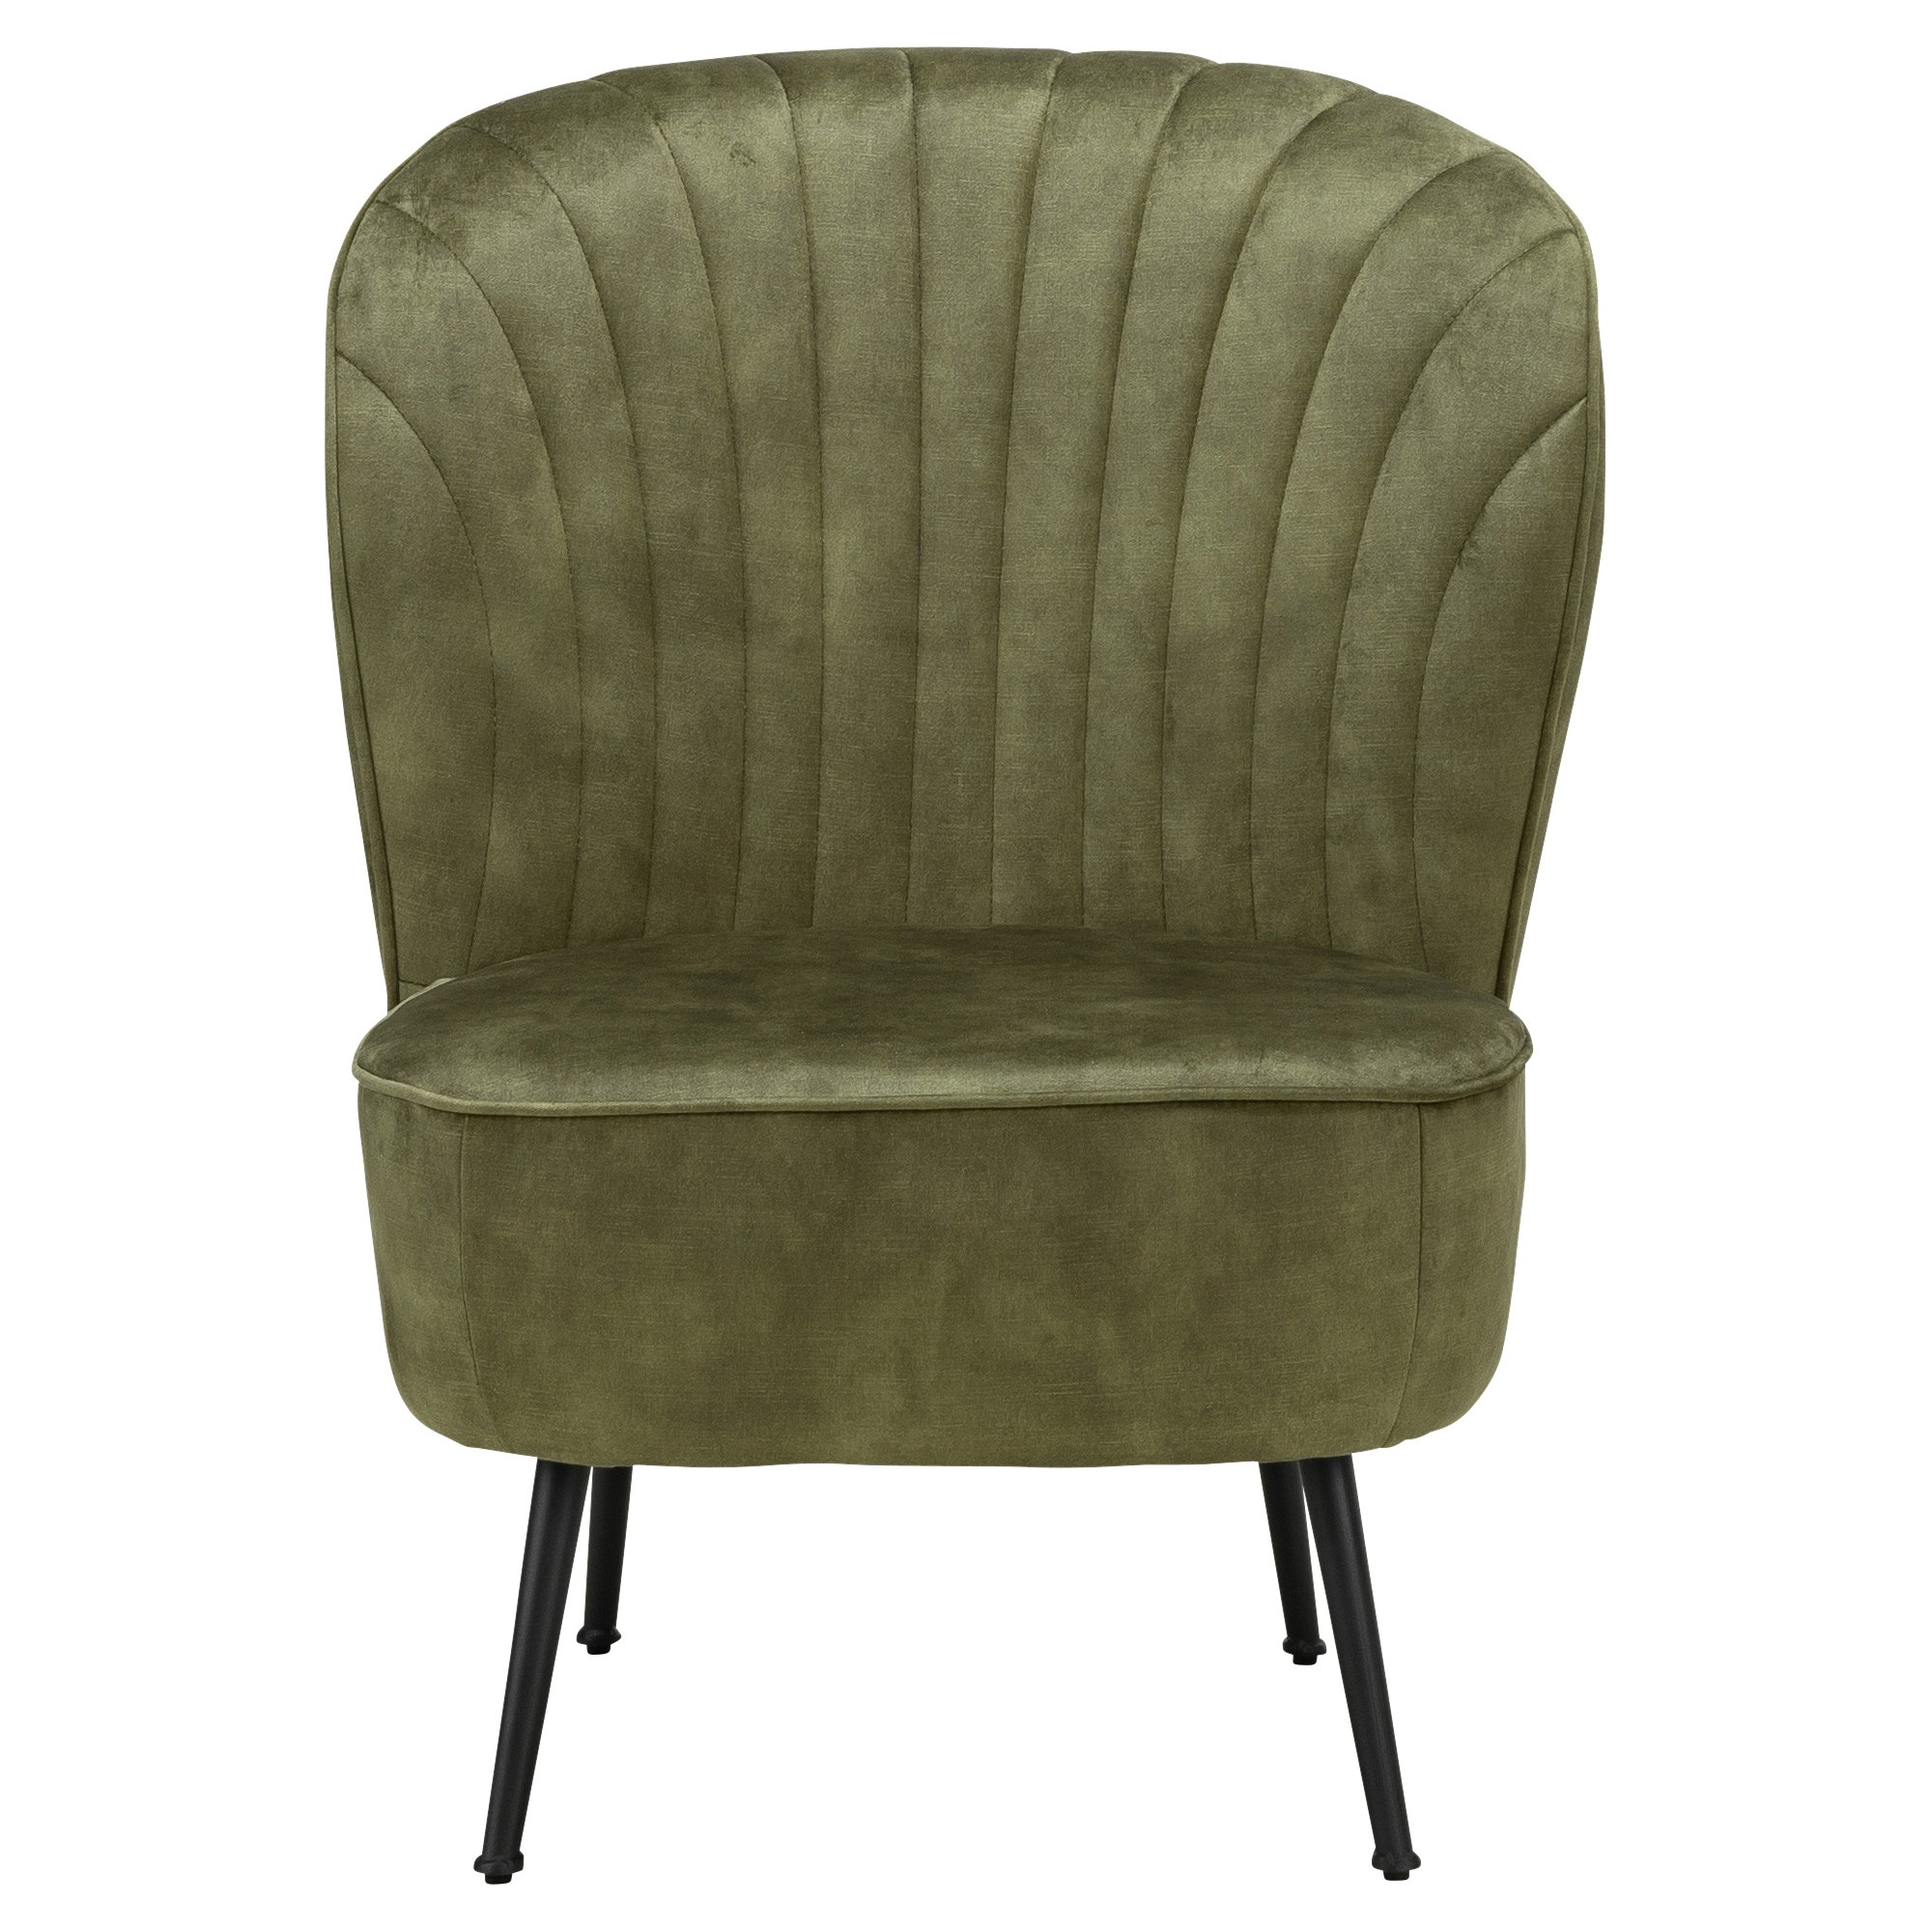 Shell Velvet Fabric Slipper Accent Chair, Moss Green